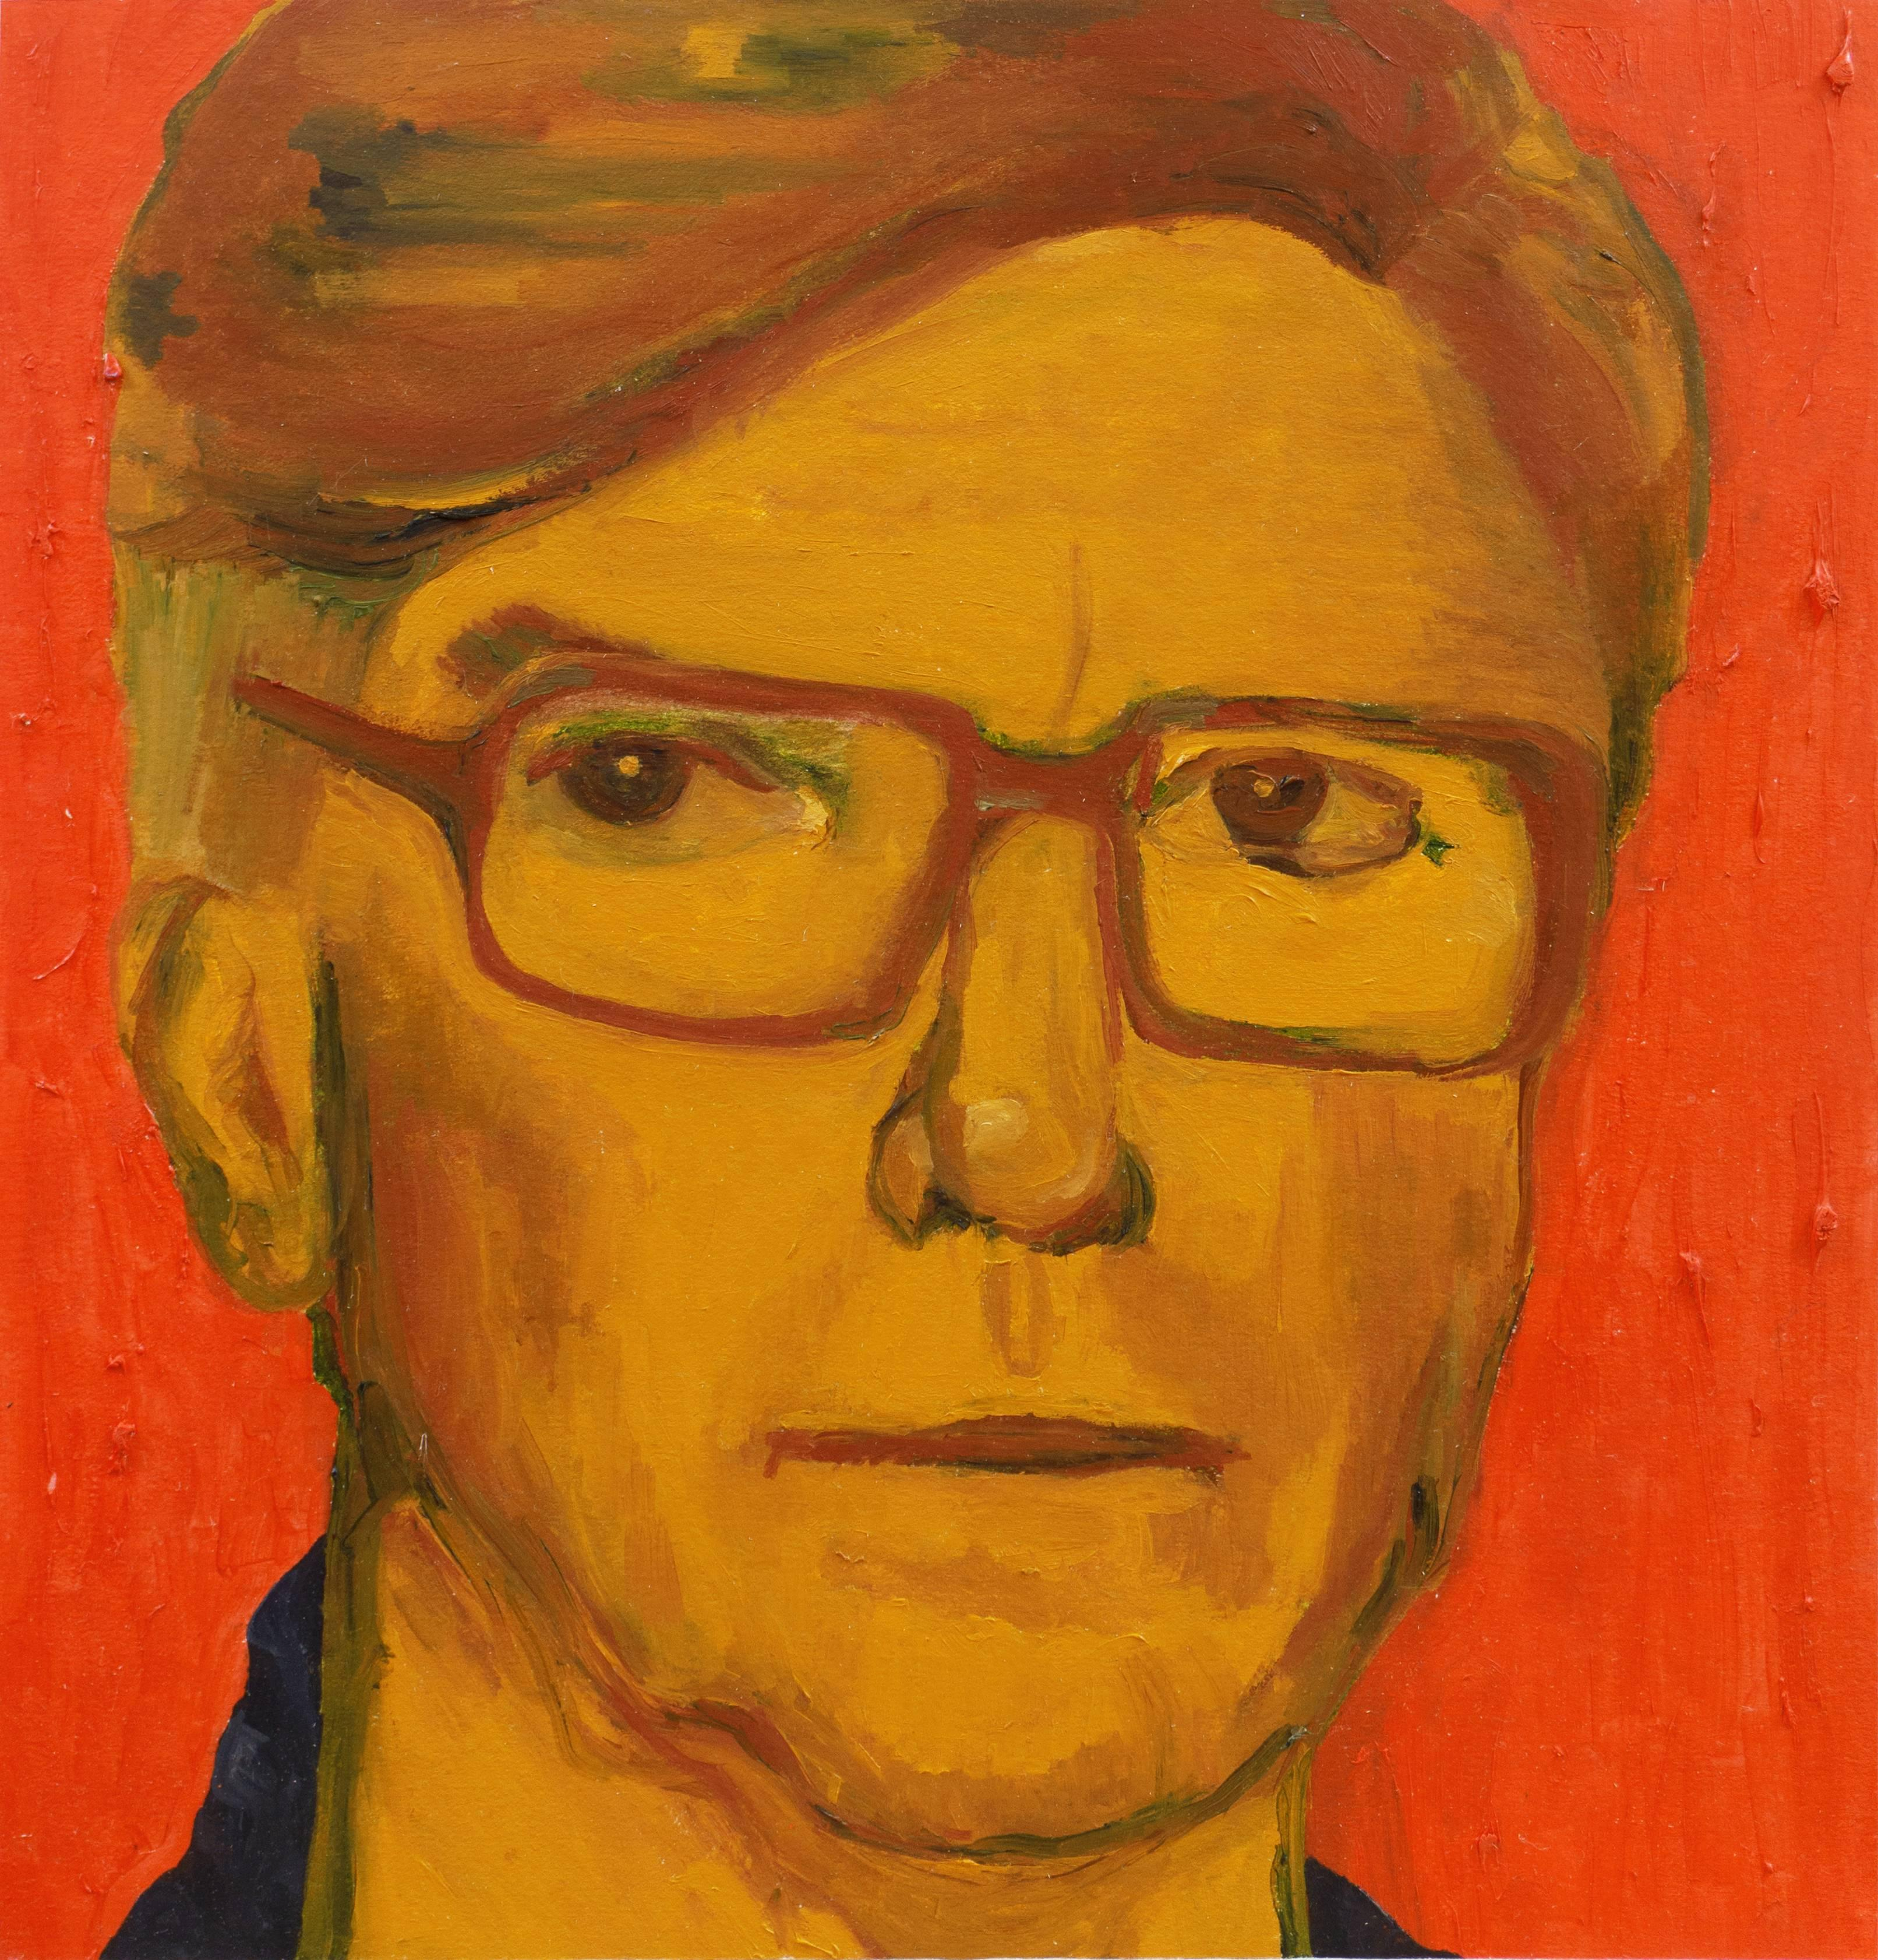 'Man in Glasses', Post Impressionist oil study in Ochre and Coral